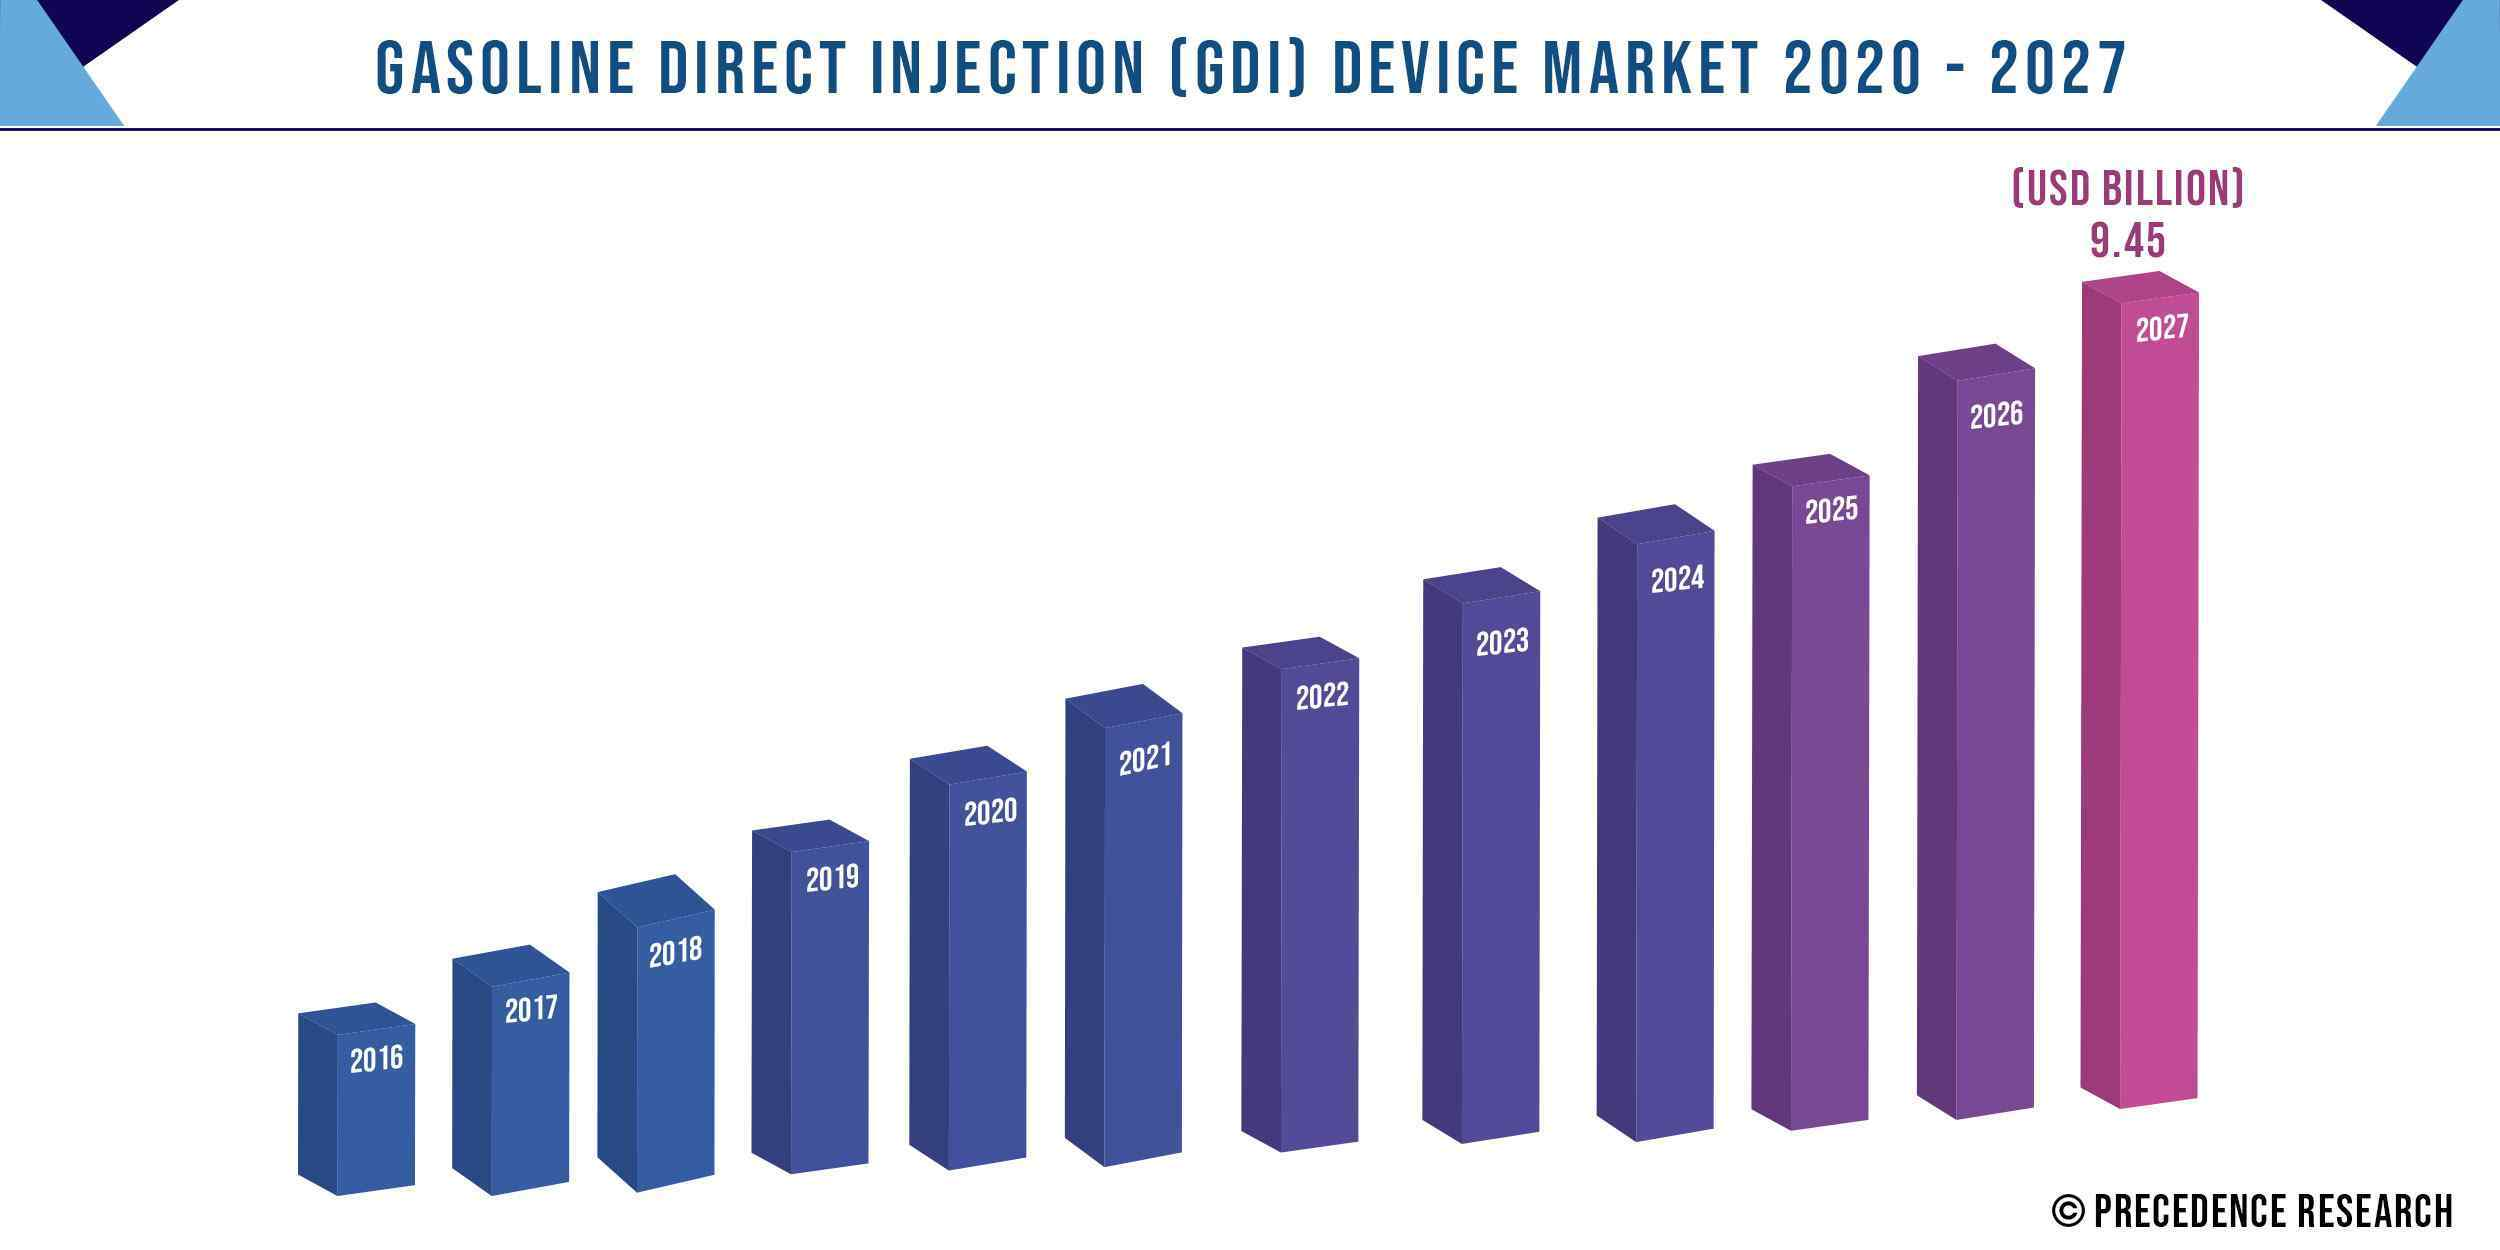 Gasoline Direct Injection (GDI) Device Market Size 2016-2027